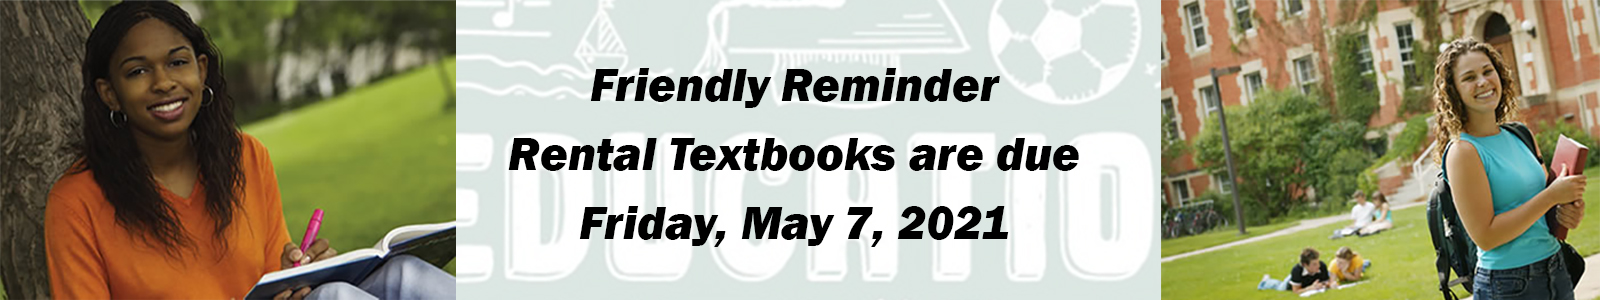 Spring 2021 Rental Books are due May 7, 2021